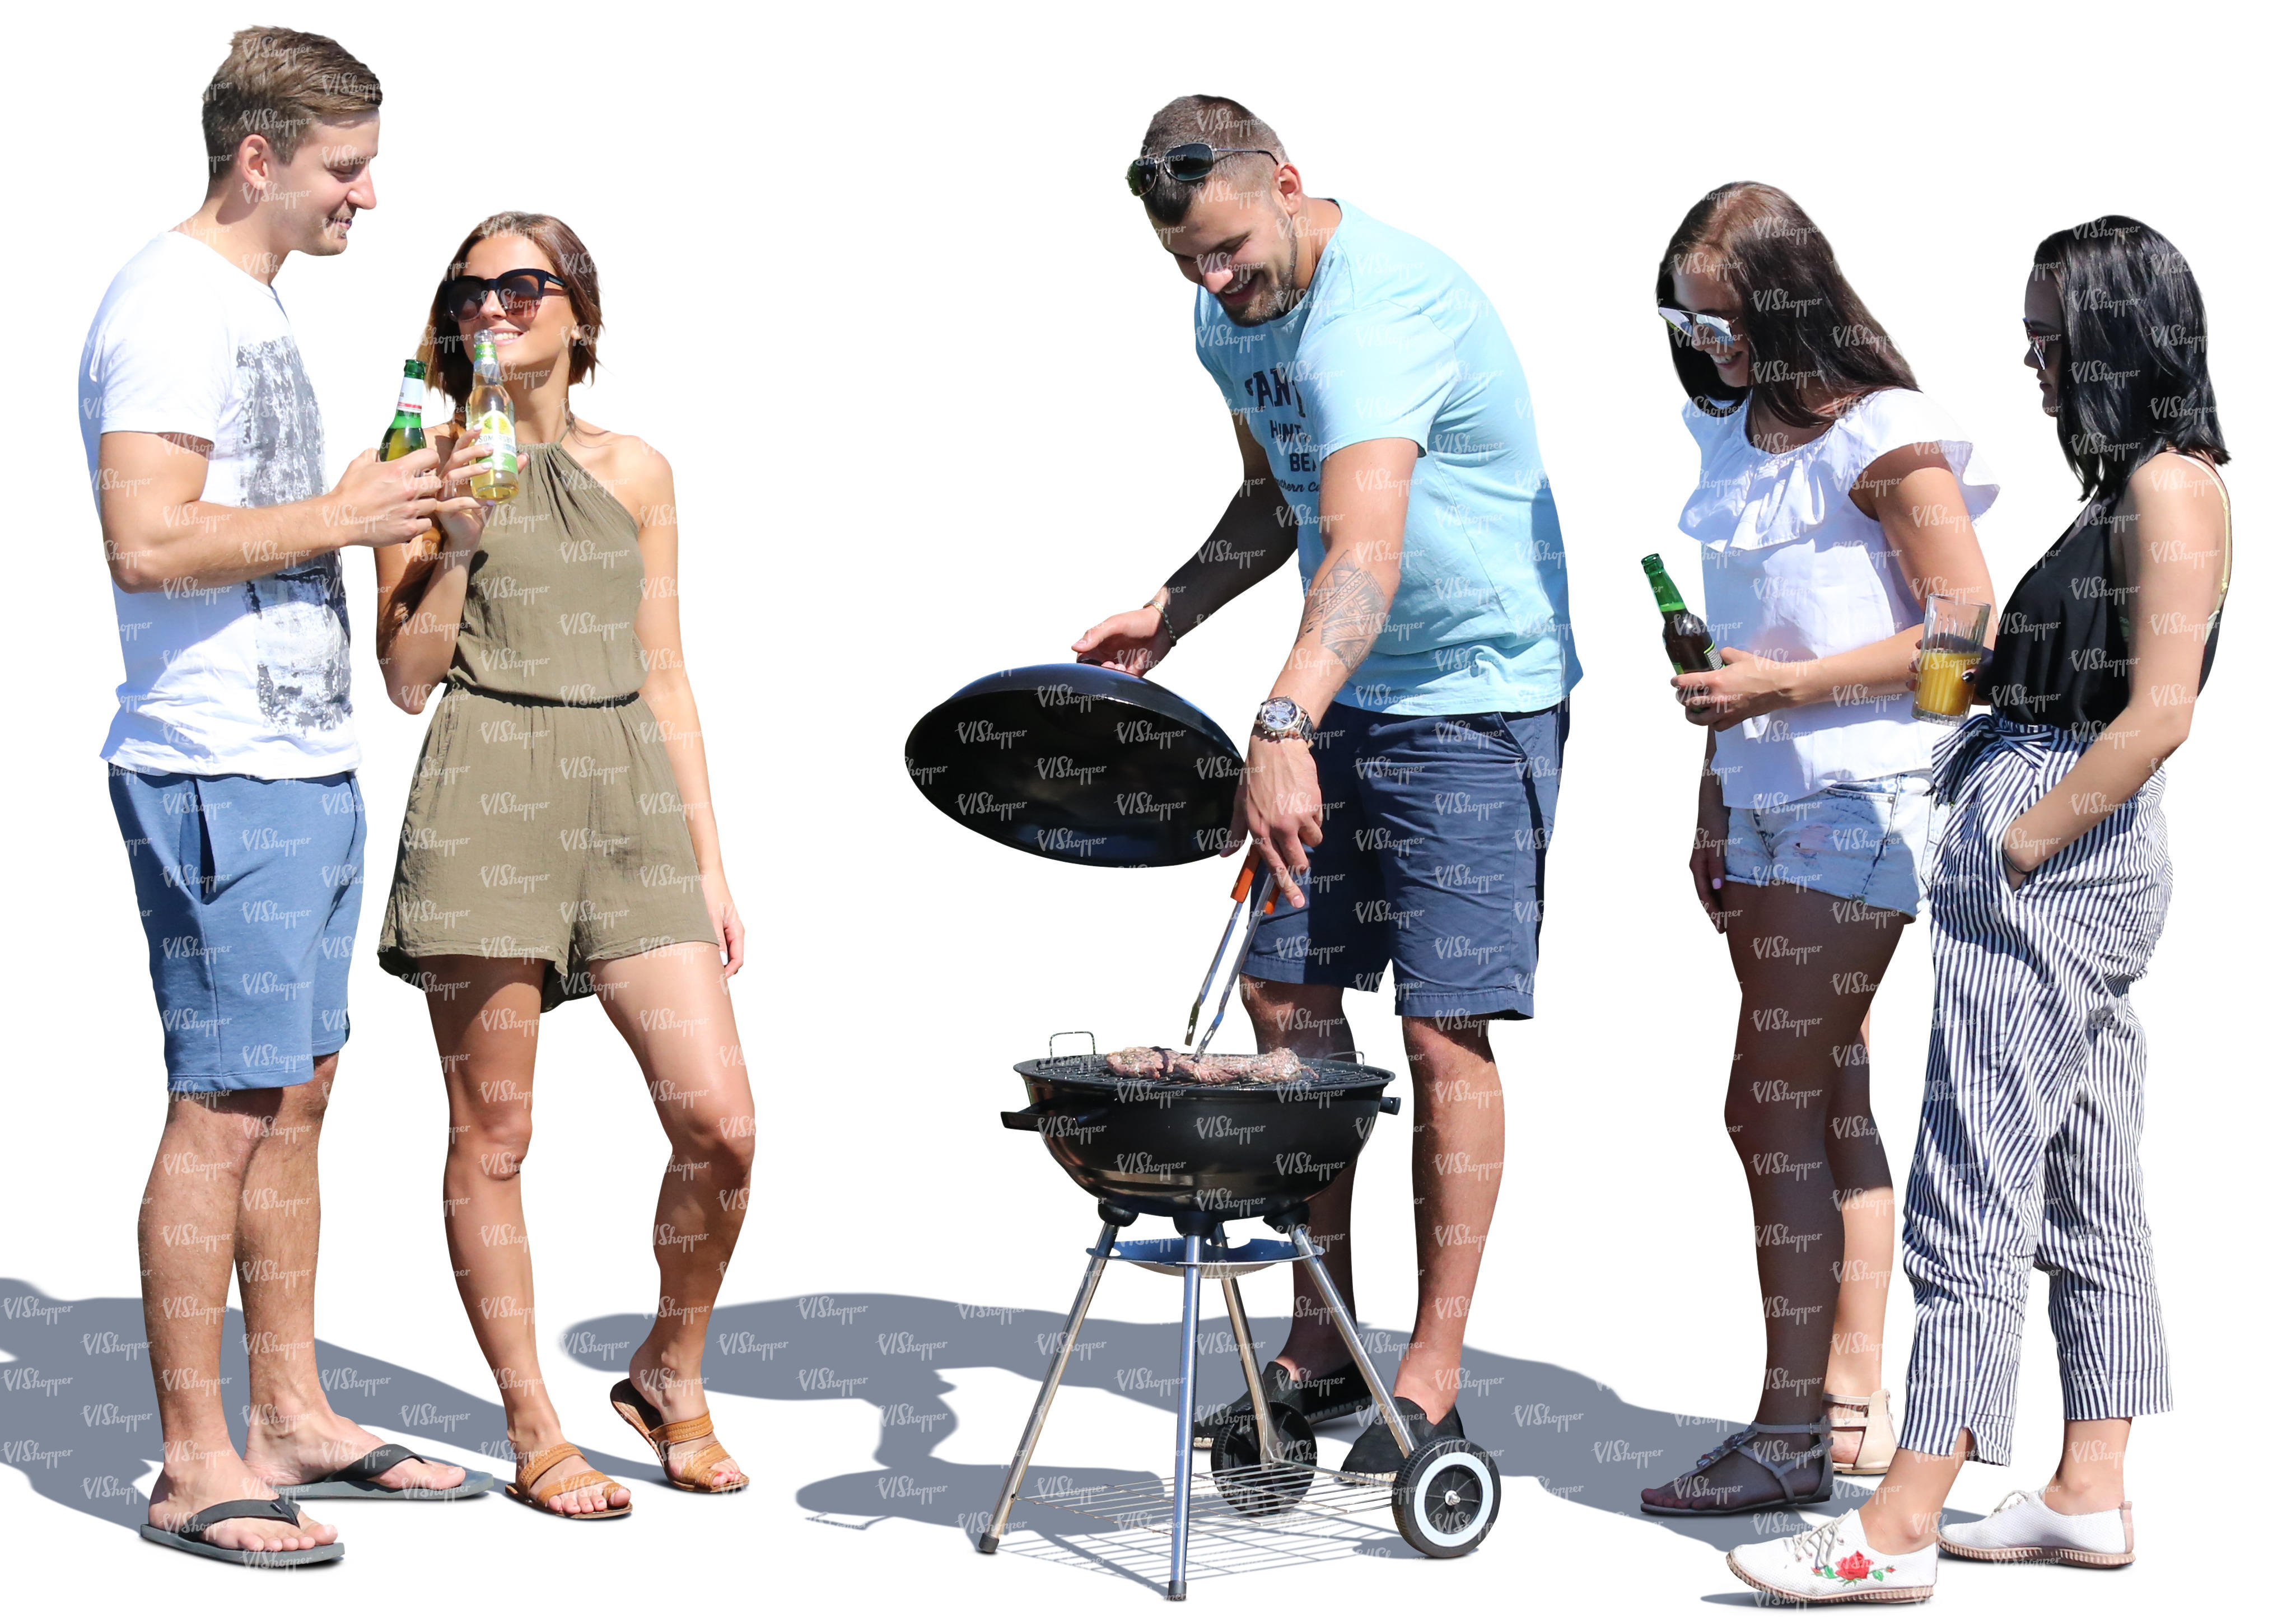 group of young men and women having a barbeque party cut out